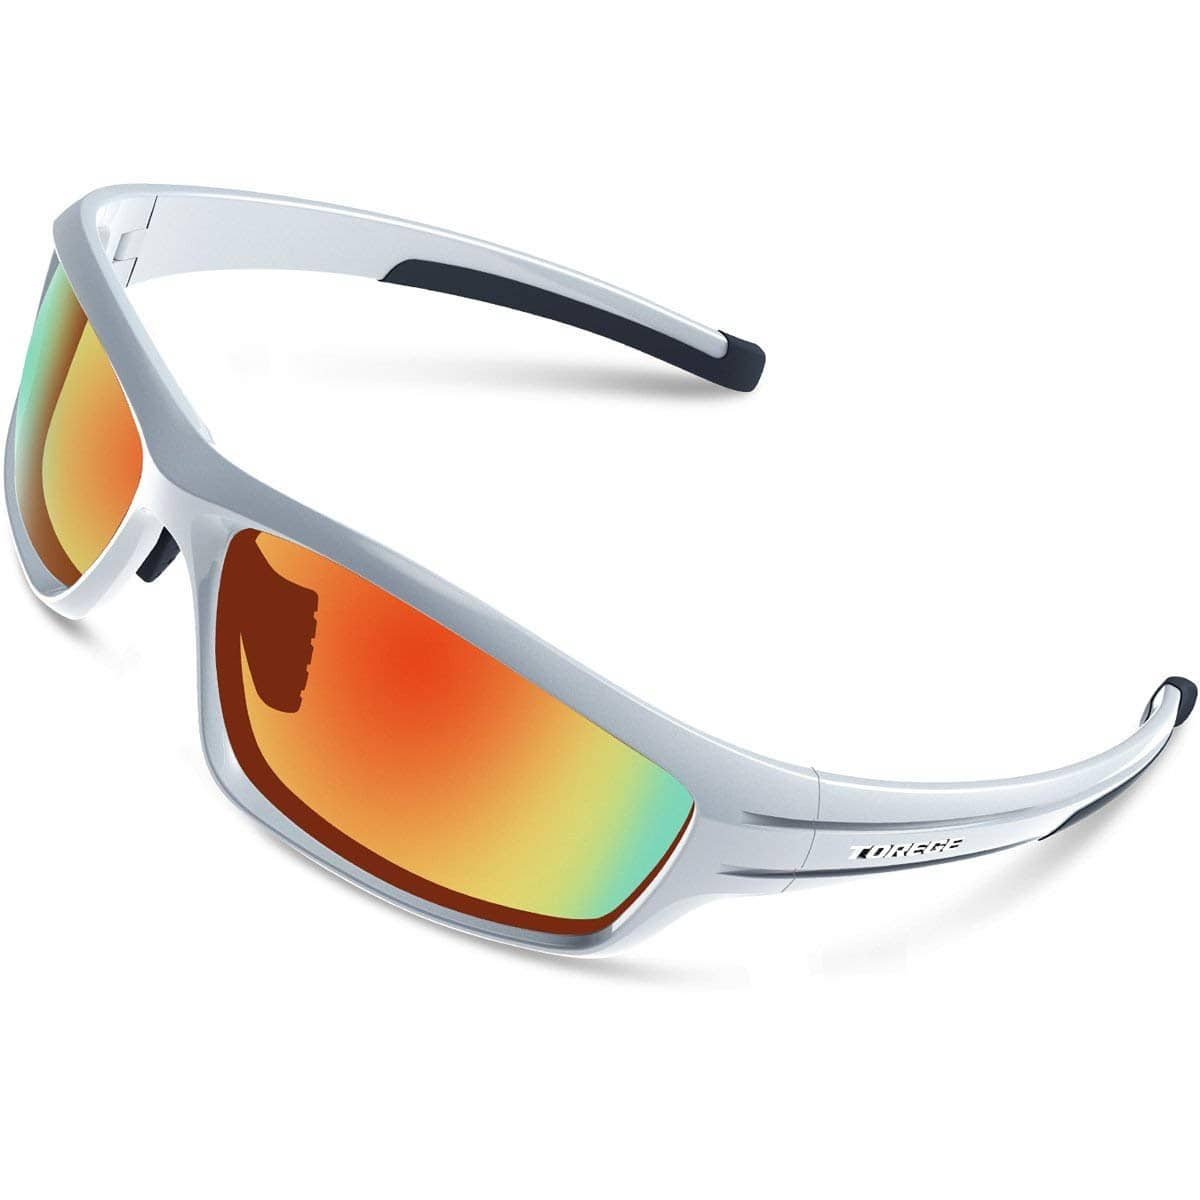 5e88270474f TOREGE Polarized Sports Sunglasses for Men Women Cycling Running Driving  Fishing Golf Baseball Unbreakable Frame  8.18